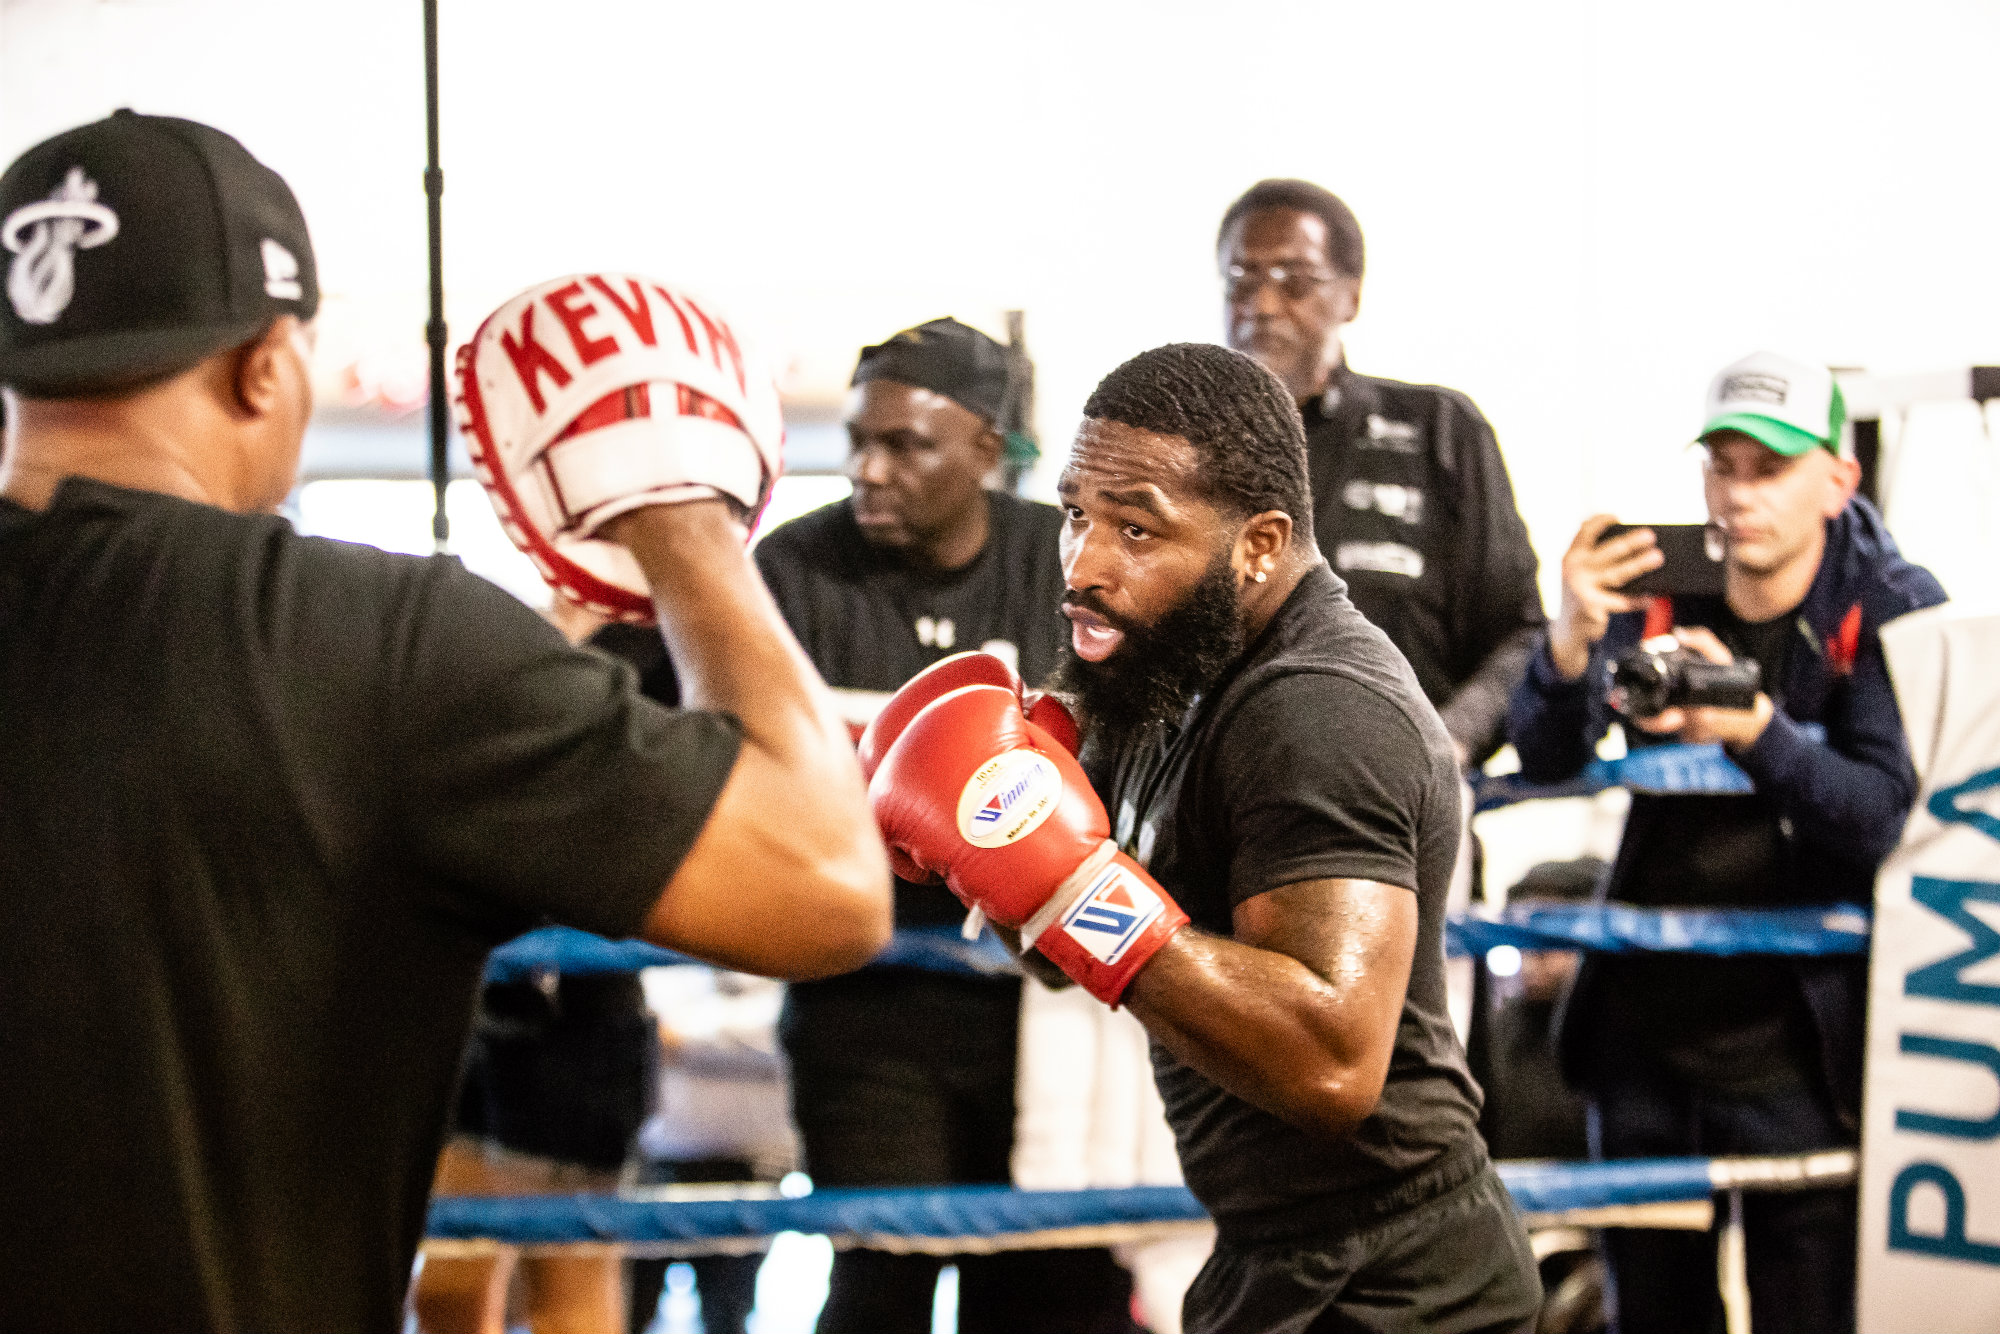 Adrien Broner. Photo by Robby Illanes/SHOWTIME